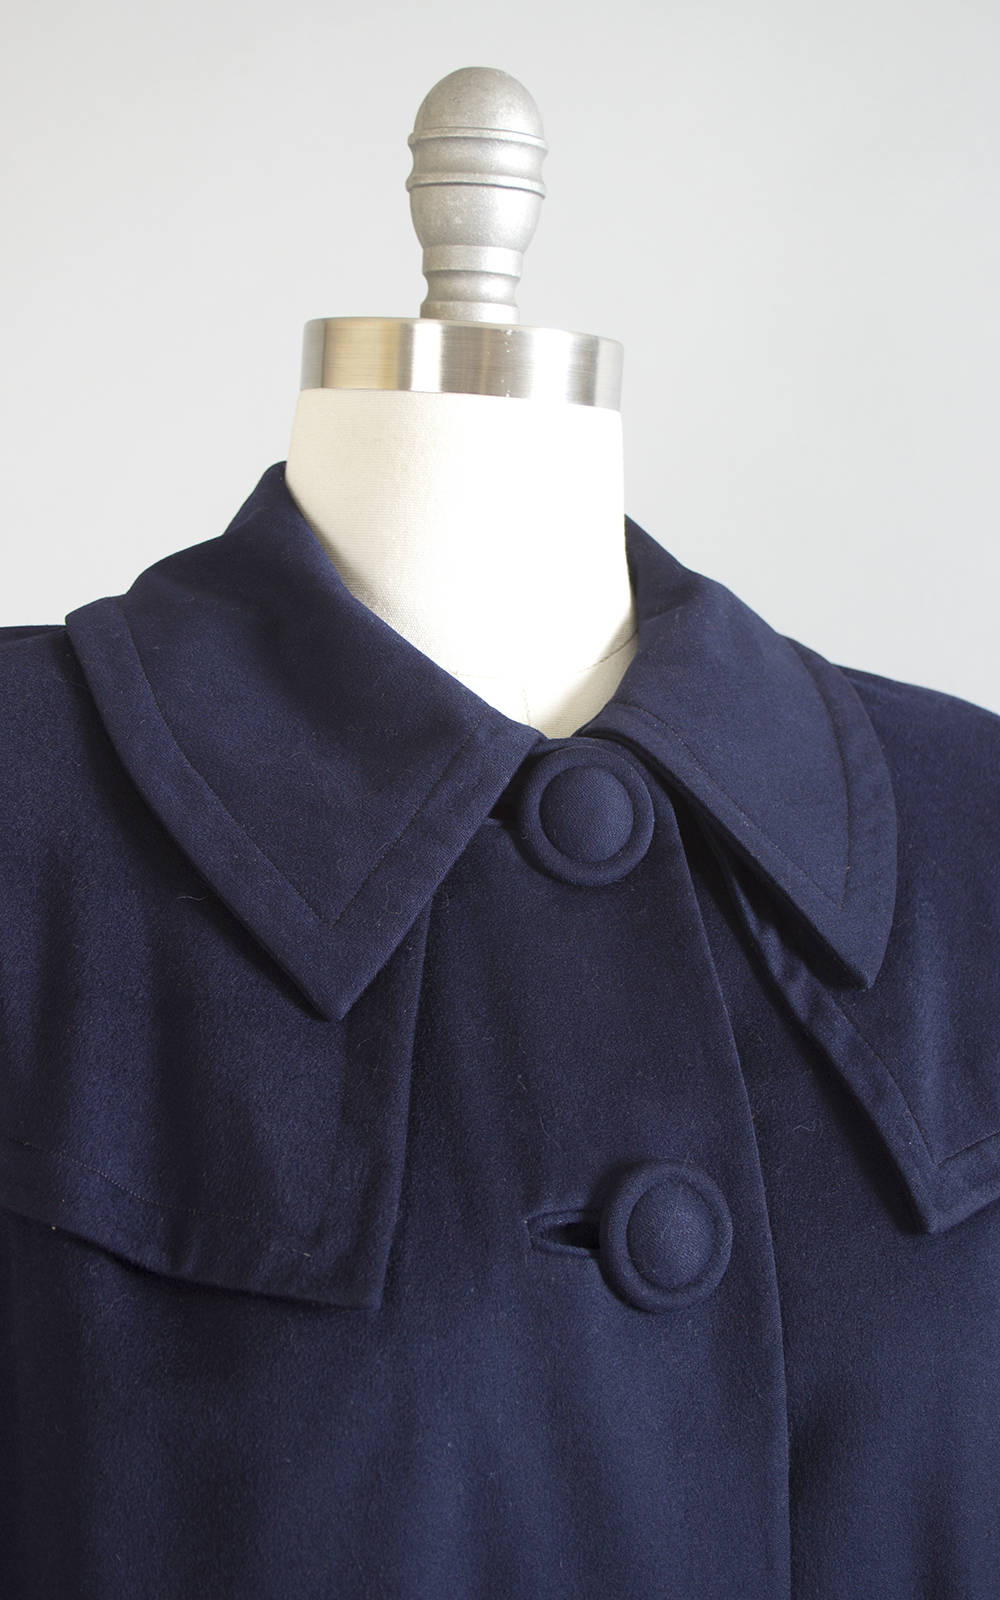 Vintage 1950s Coat | 50s FORSTMANN Navy Blue Wool Swing Coat Minimalist Jacket (medium/large)